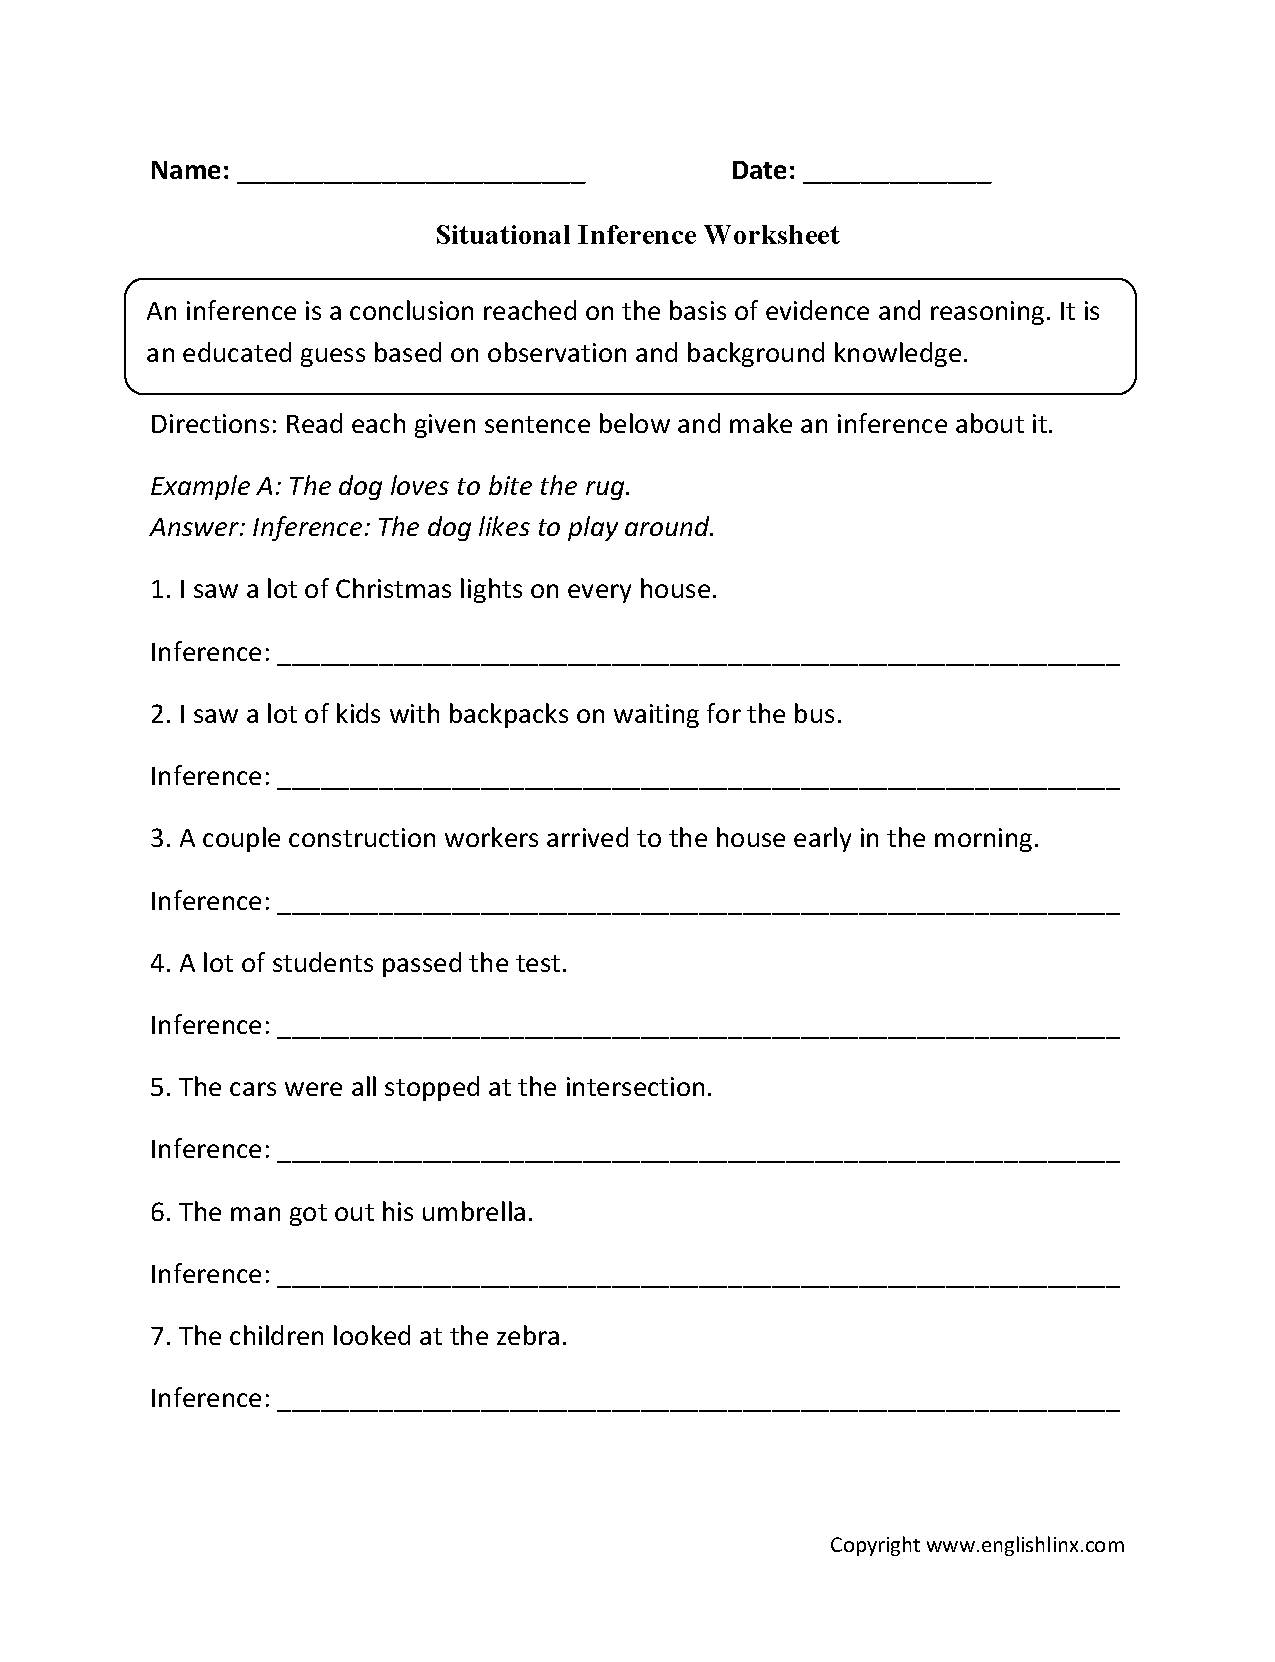 Situational Inference Worksheets   Reading Comprehension